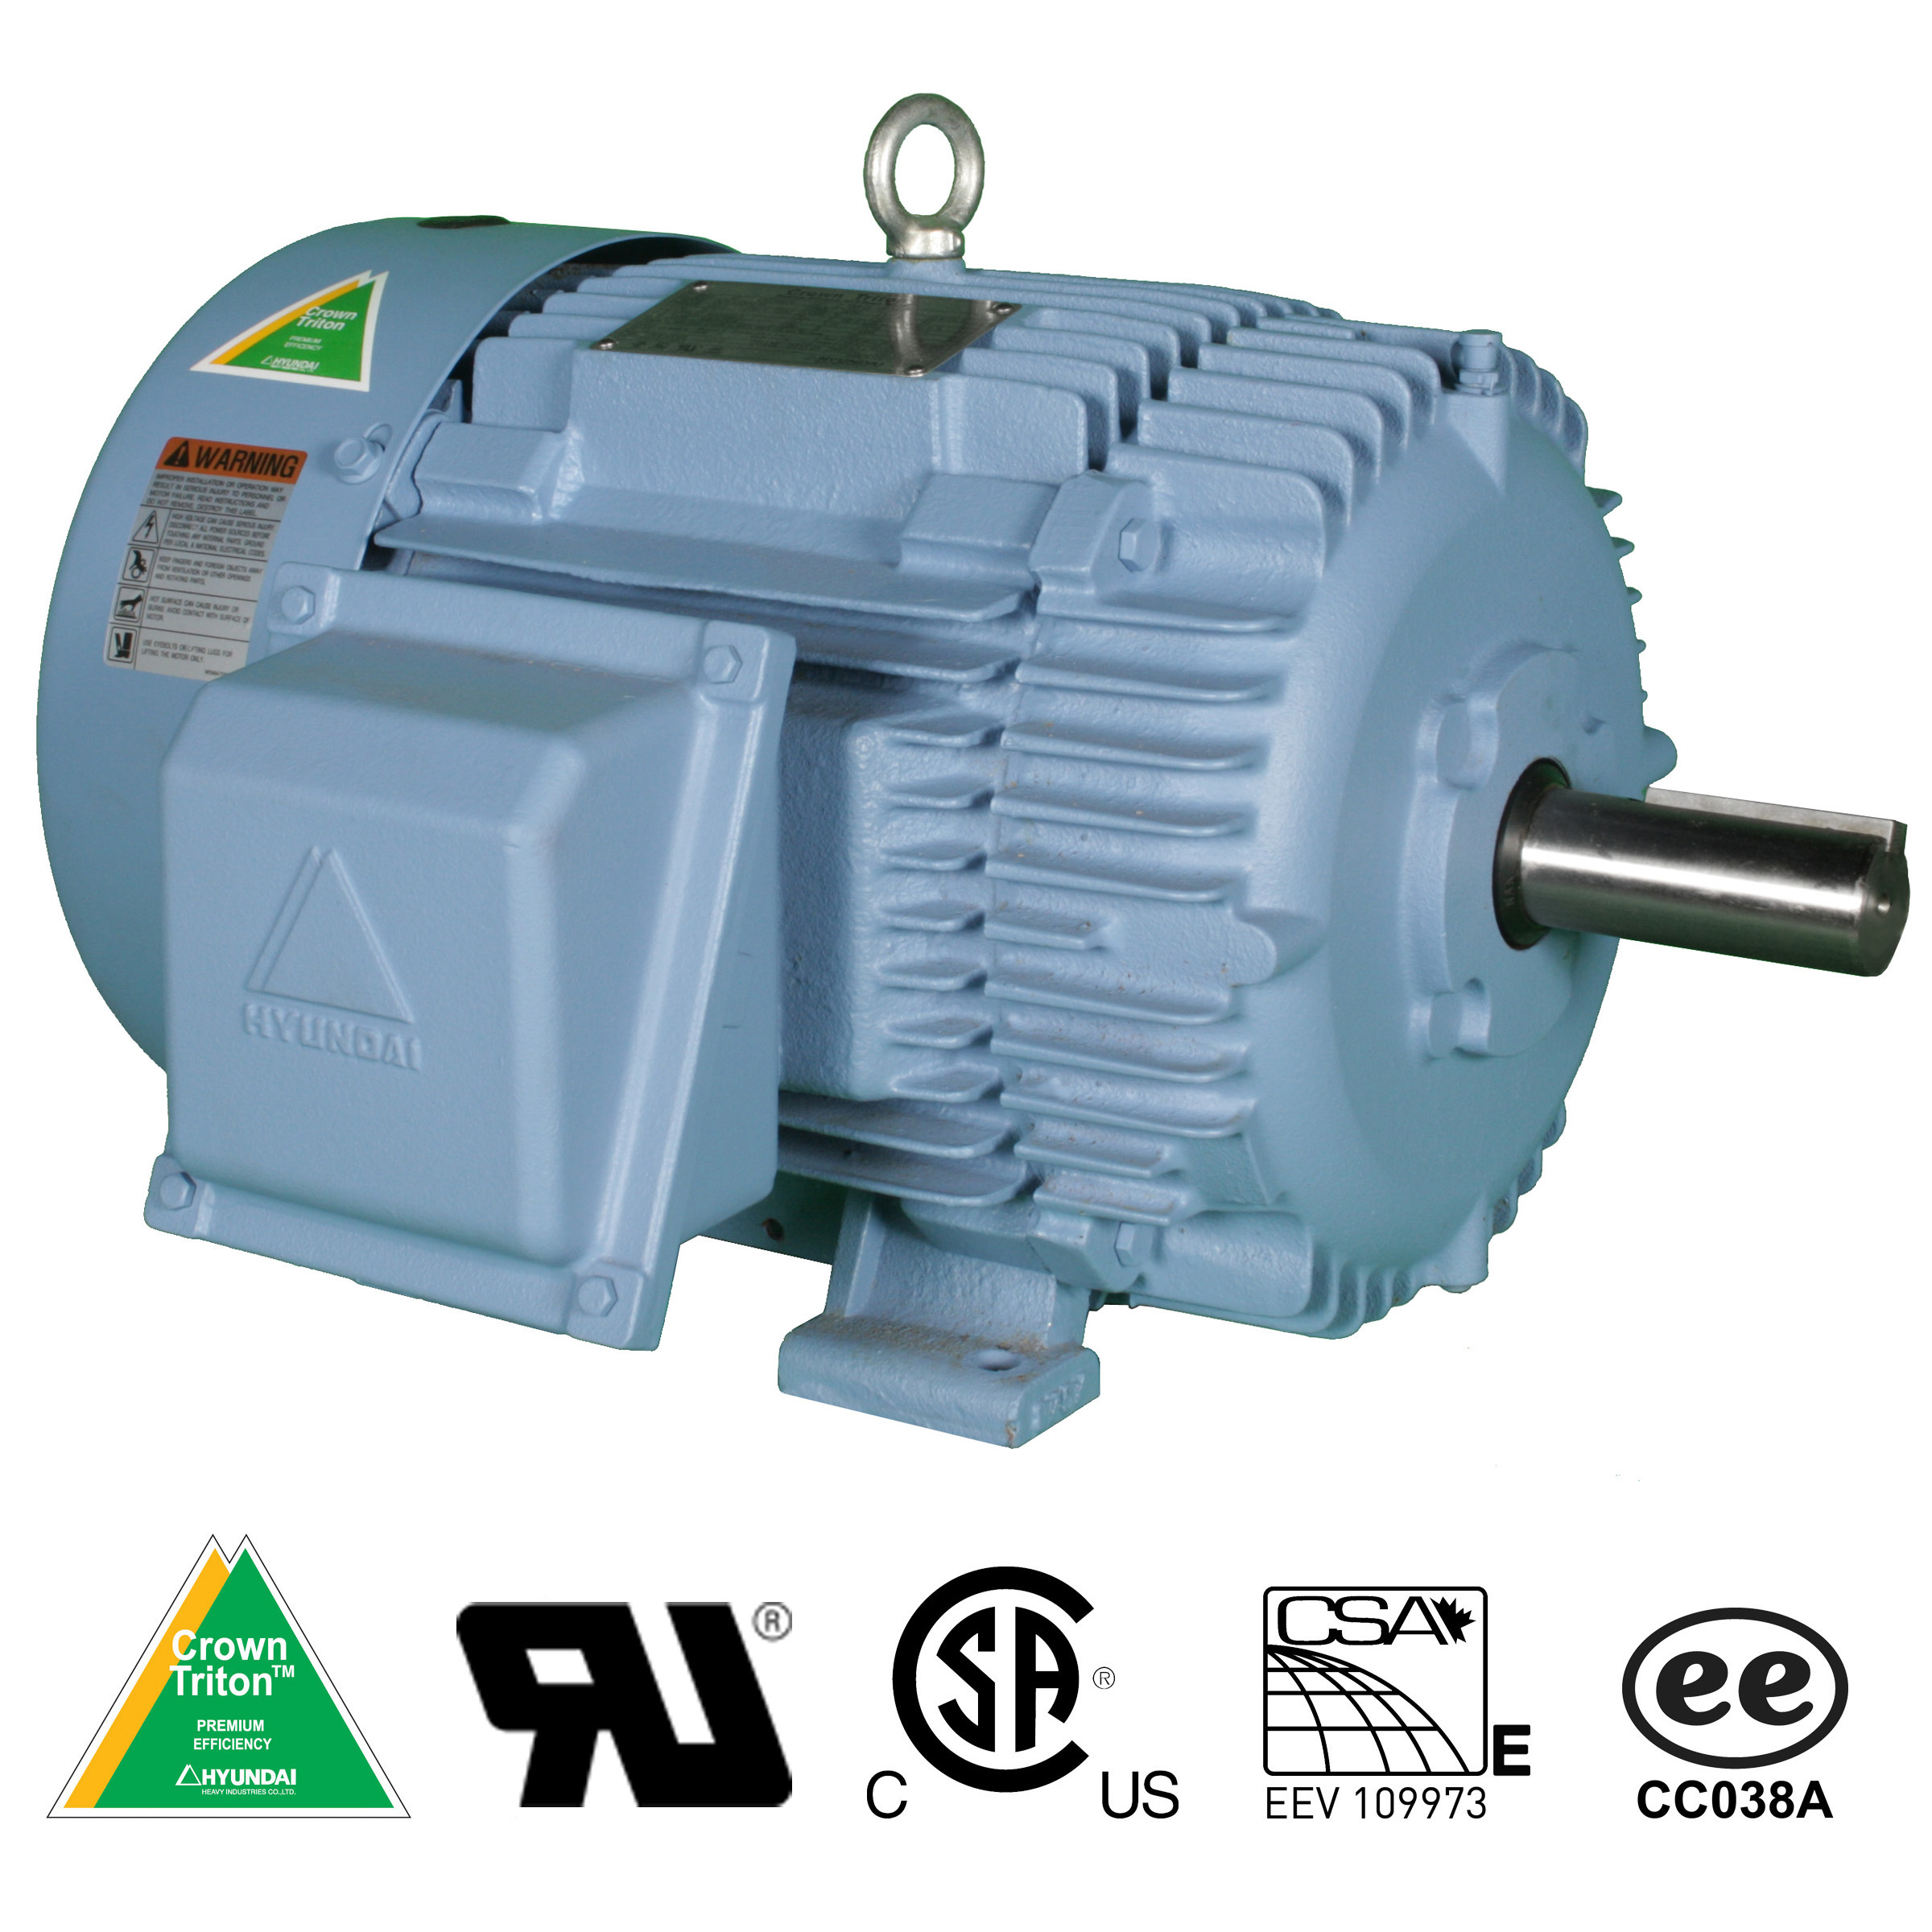 Hyundai Crown Triton Series Electric Motors | Rainbow Precision Products